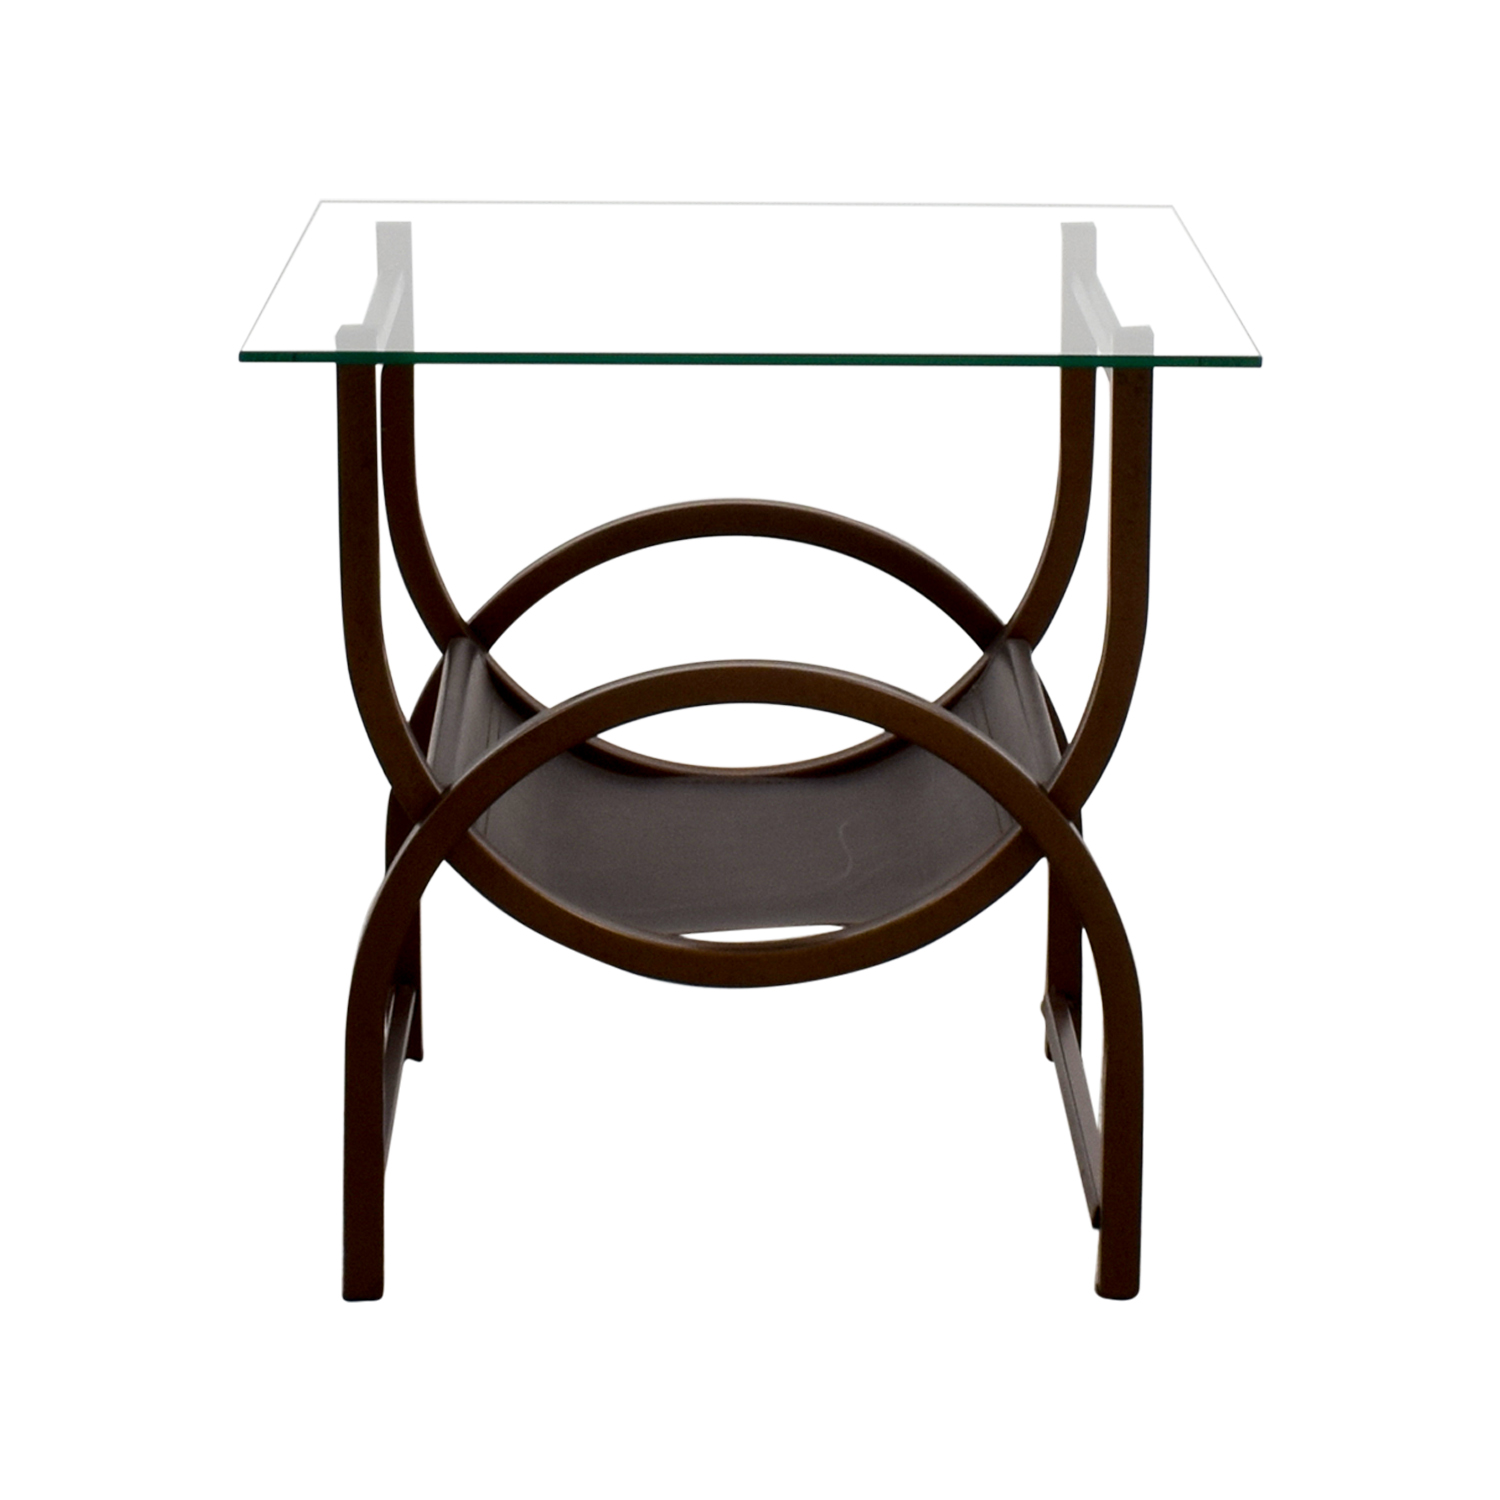 off glass and wrought iron side table tables end ethan allen accessories world market used oak furniture thomasville craigslist brown living room ideas extra high dog crates